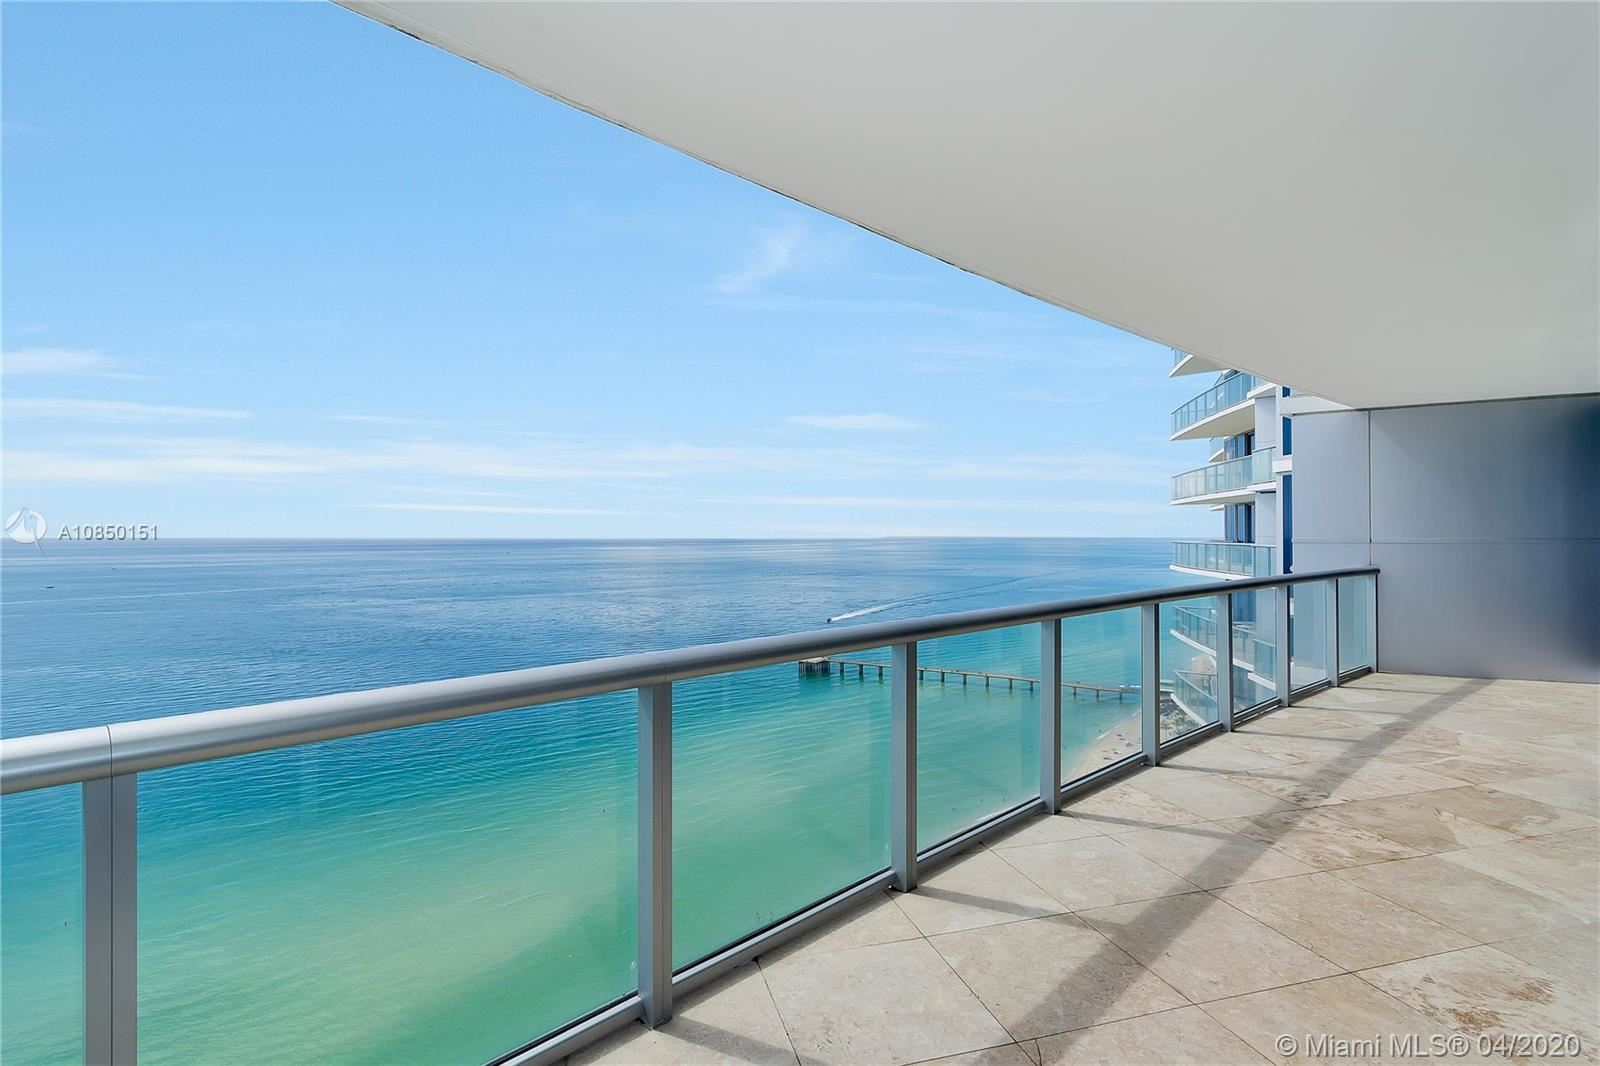 17001 Collins Ave #2807, Sunny Isles, FL 33160 - #: A10850151